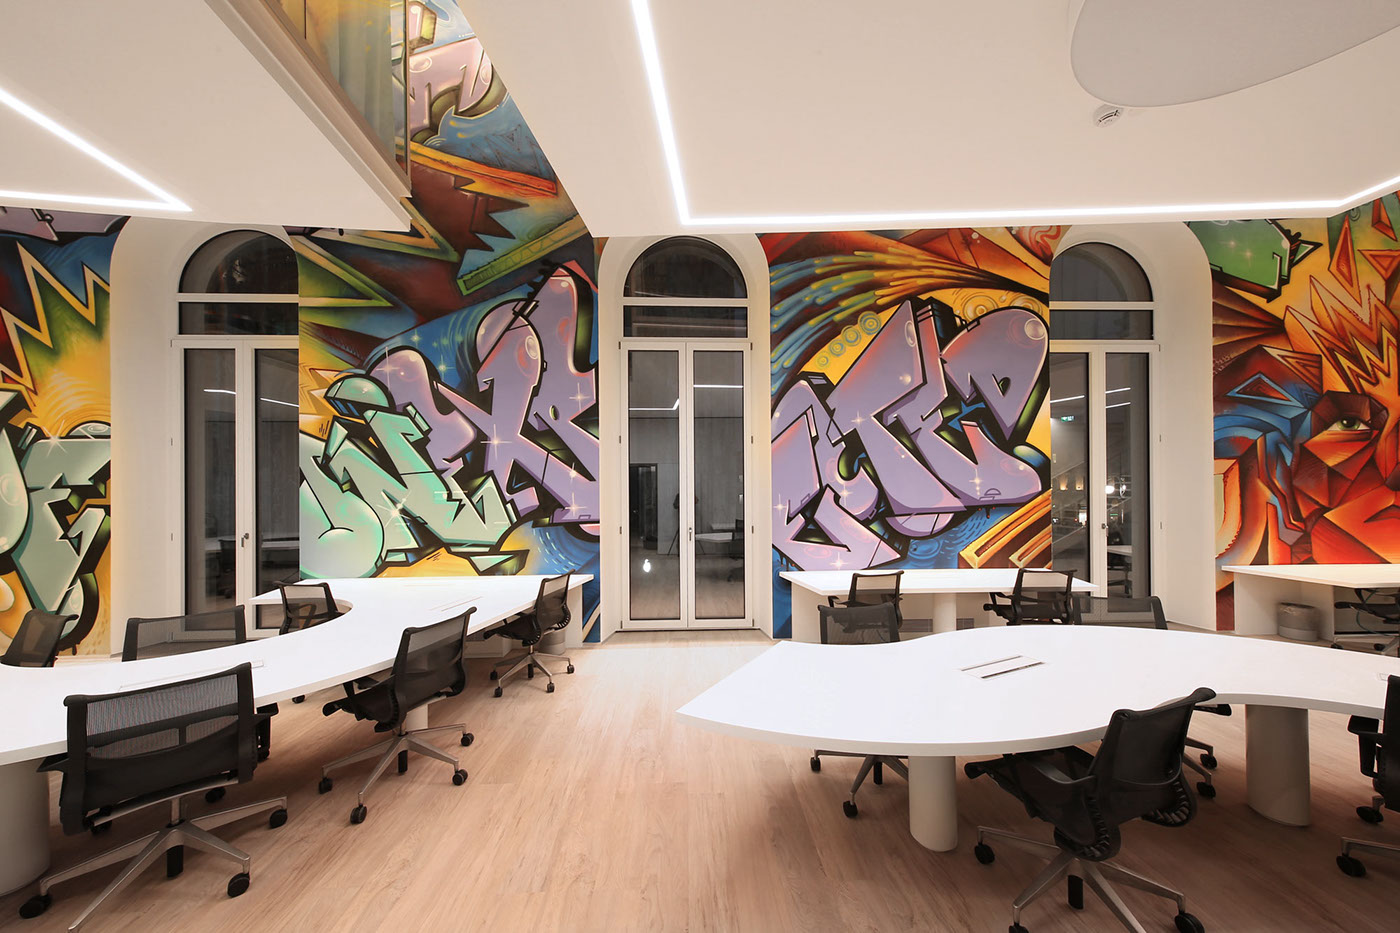 Boston consulting group office decor on behance for Design consultancy boston